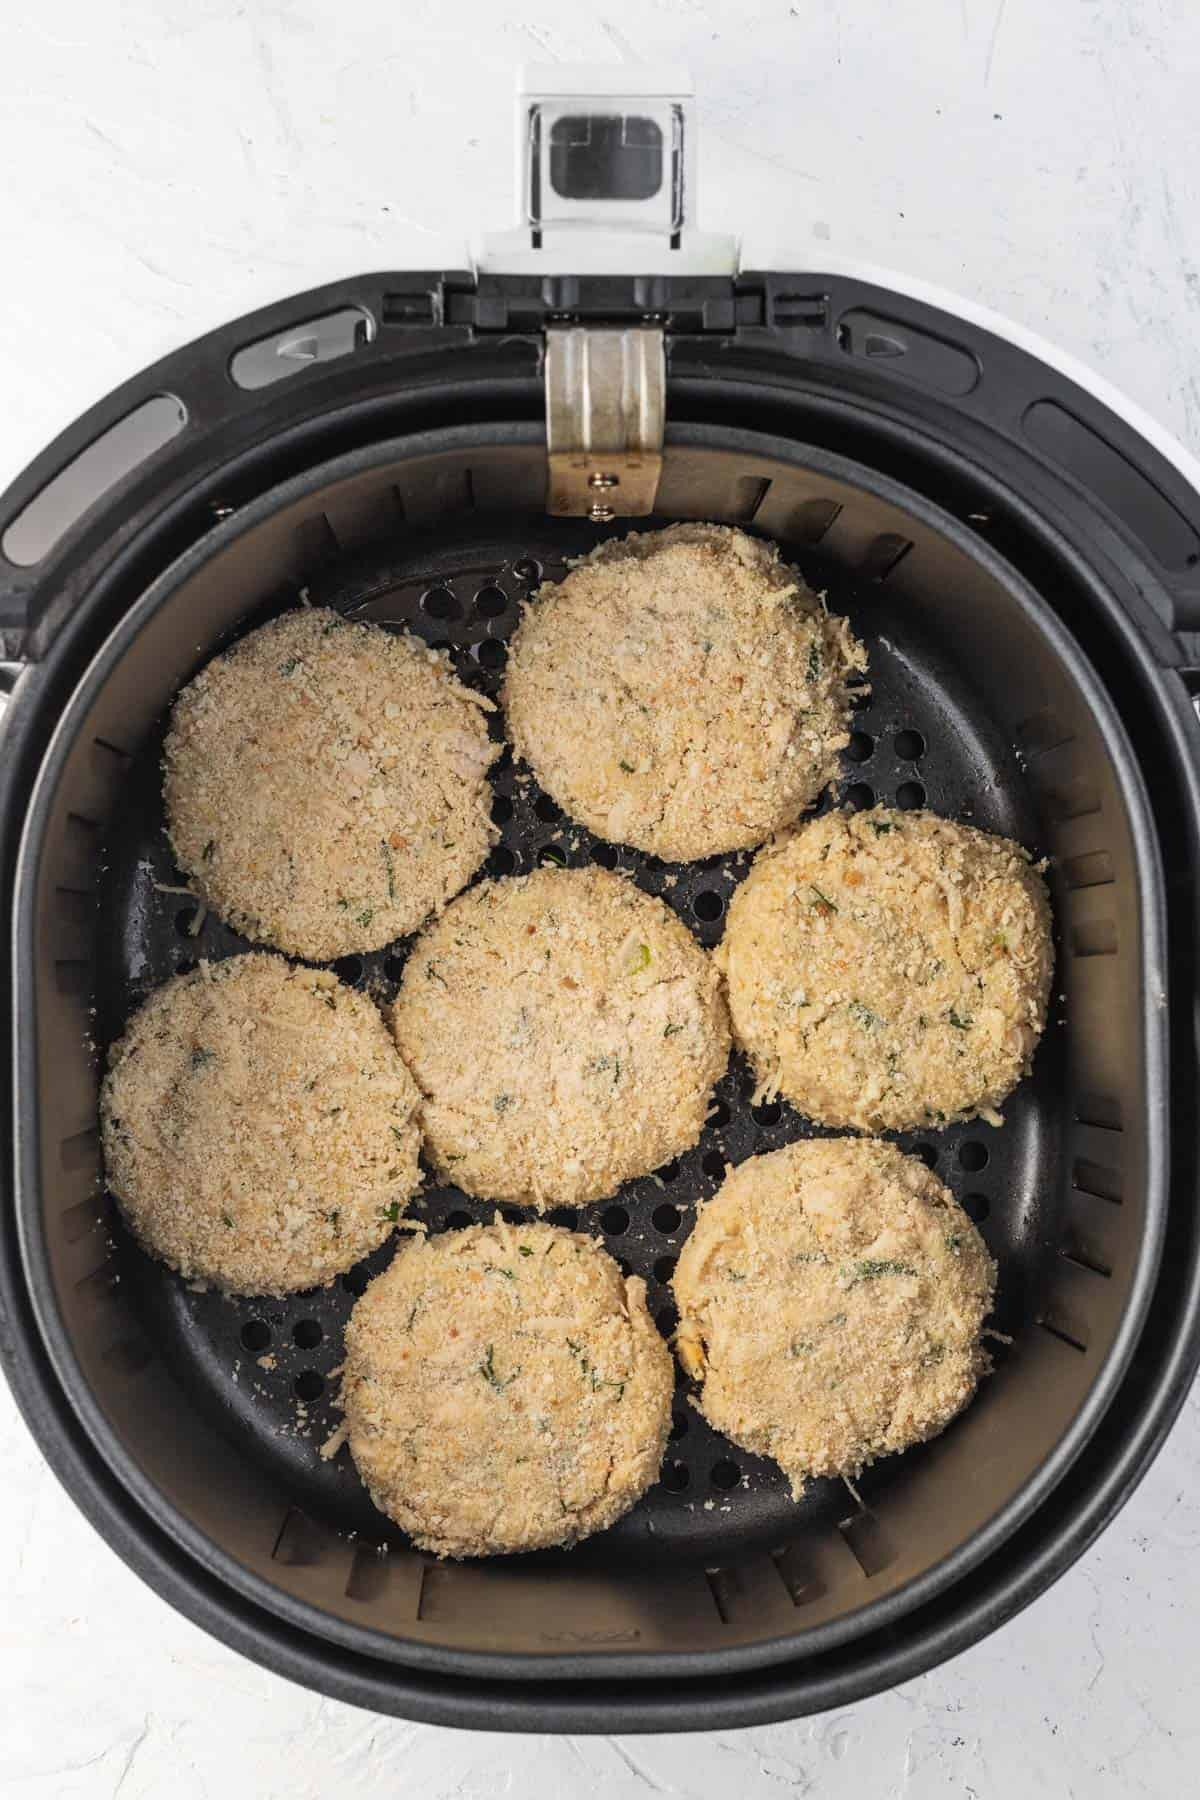 Formed uncooked chicken patties in a basket of an air fryer.